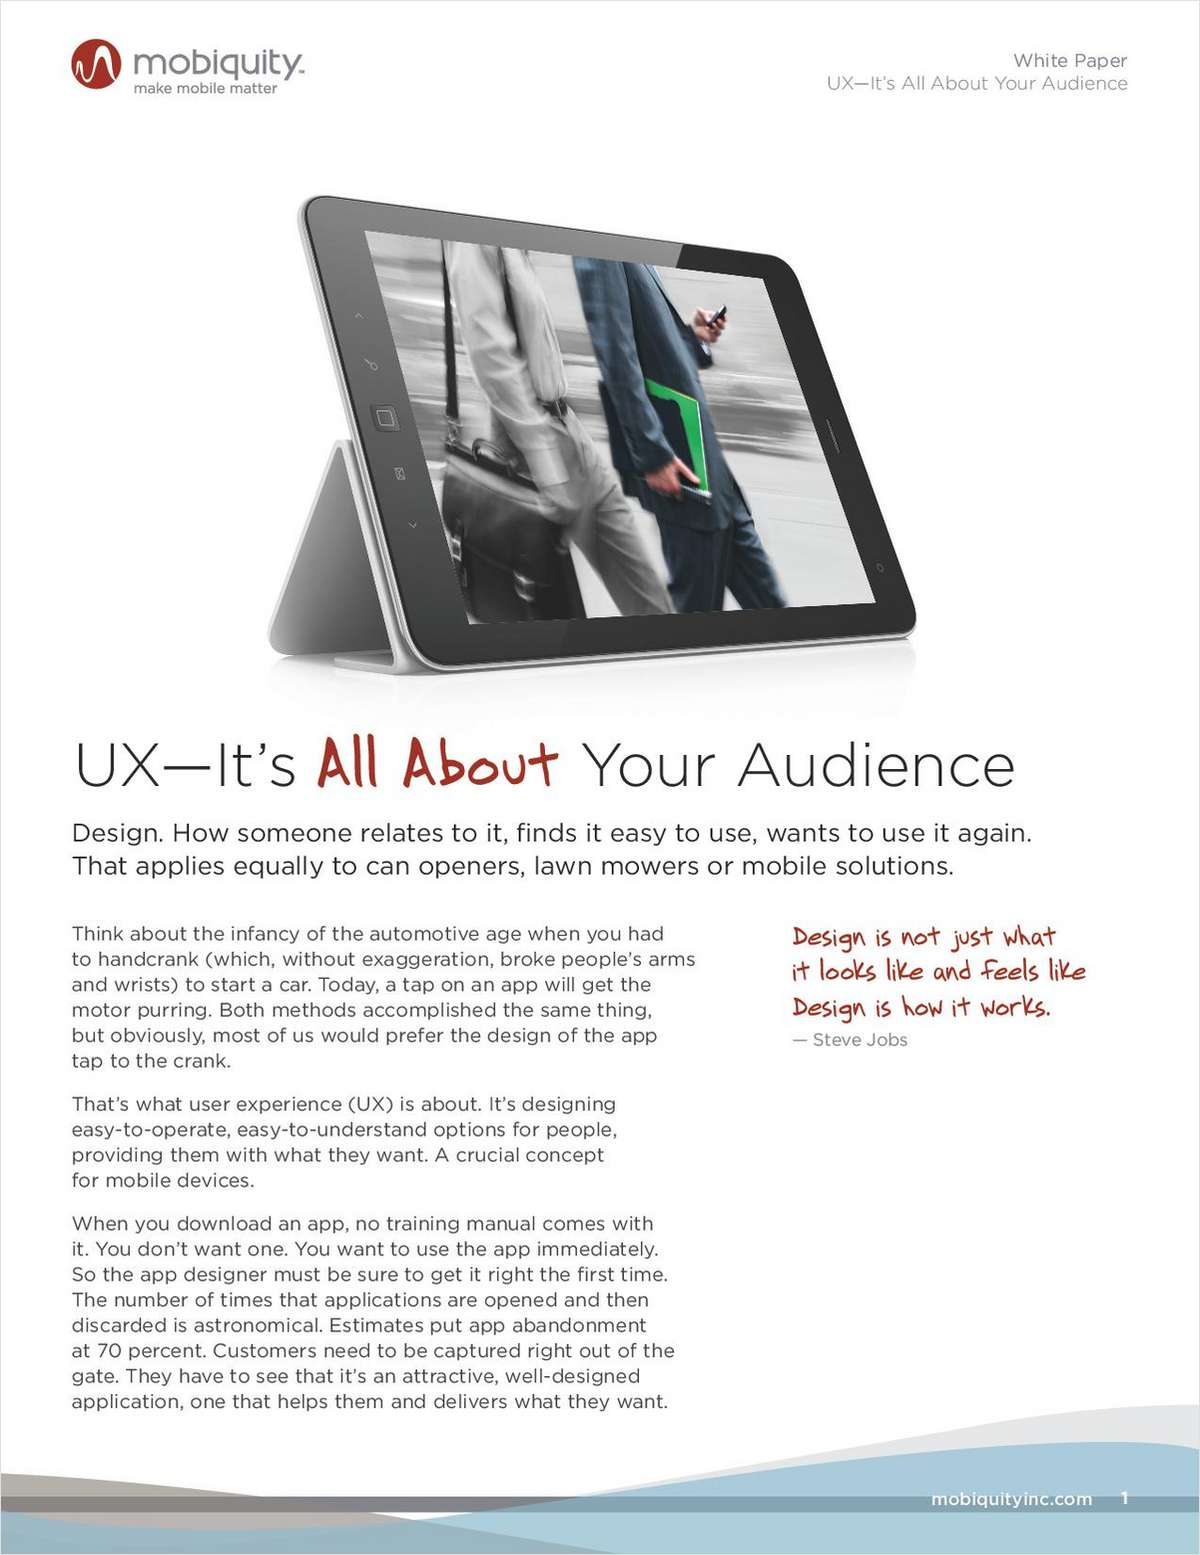 Great Mobile User Experience: It's All About Your Audience